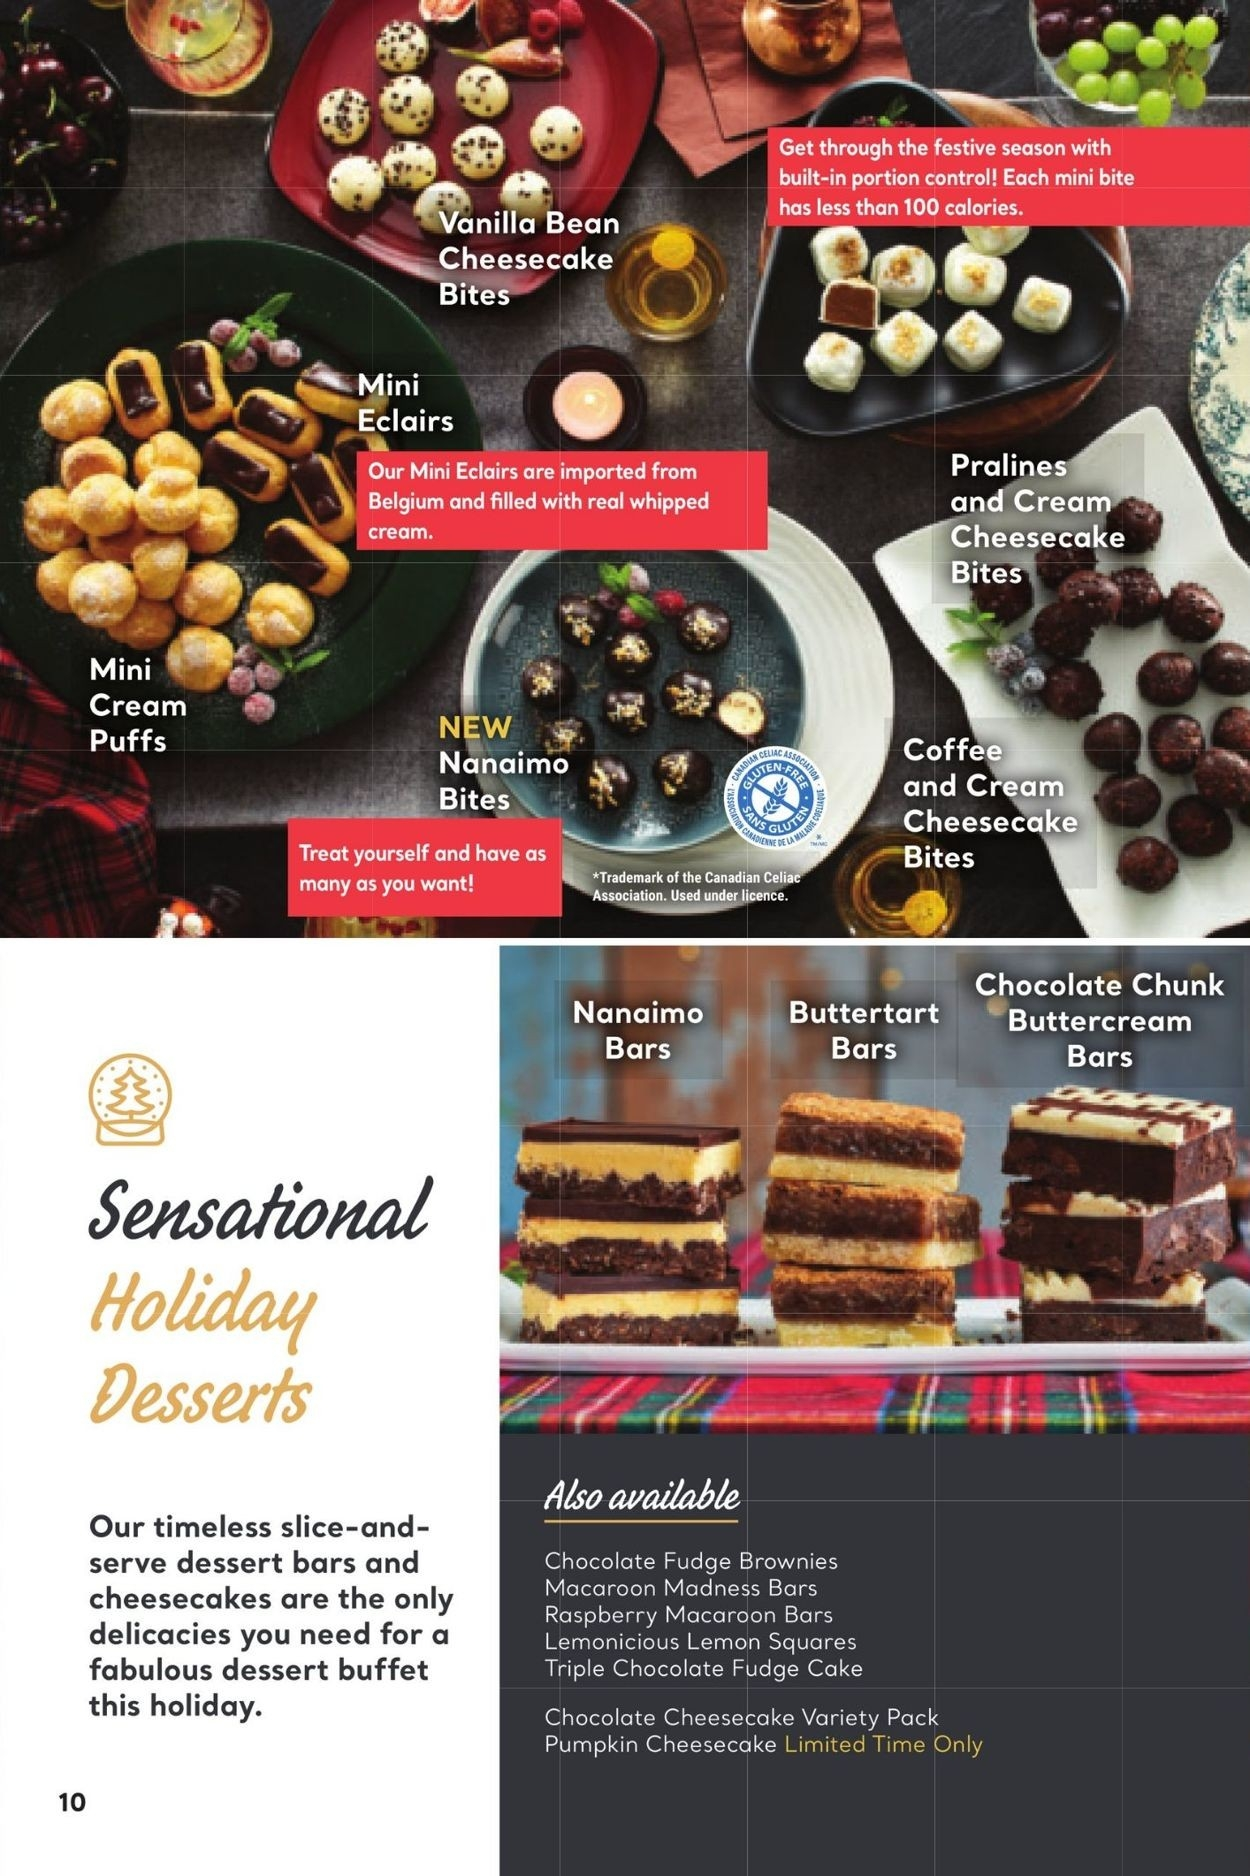 M&m Food Market Holiday Food Inspirations 2019 Current Flyer-Free Food Holidays 2020